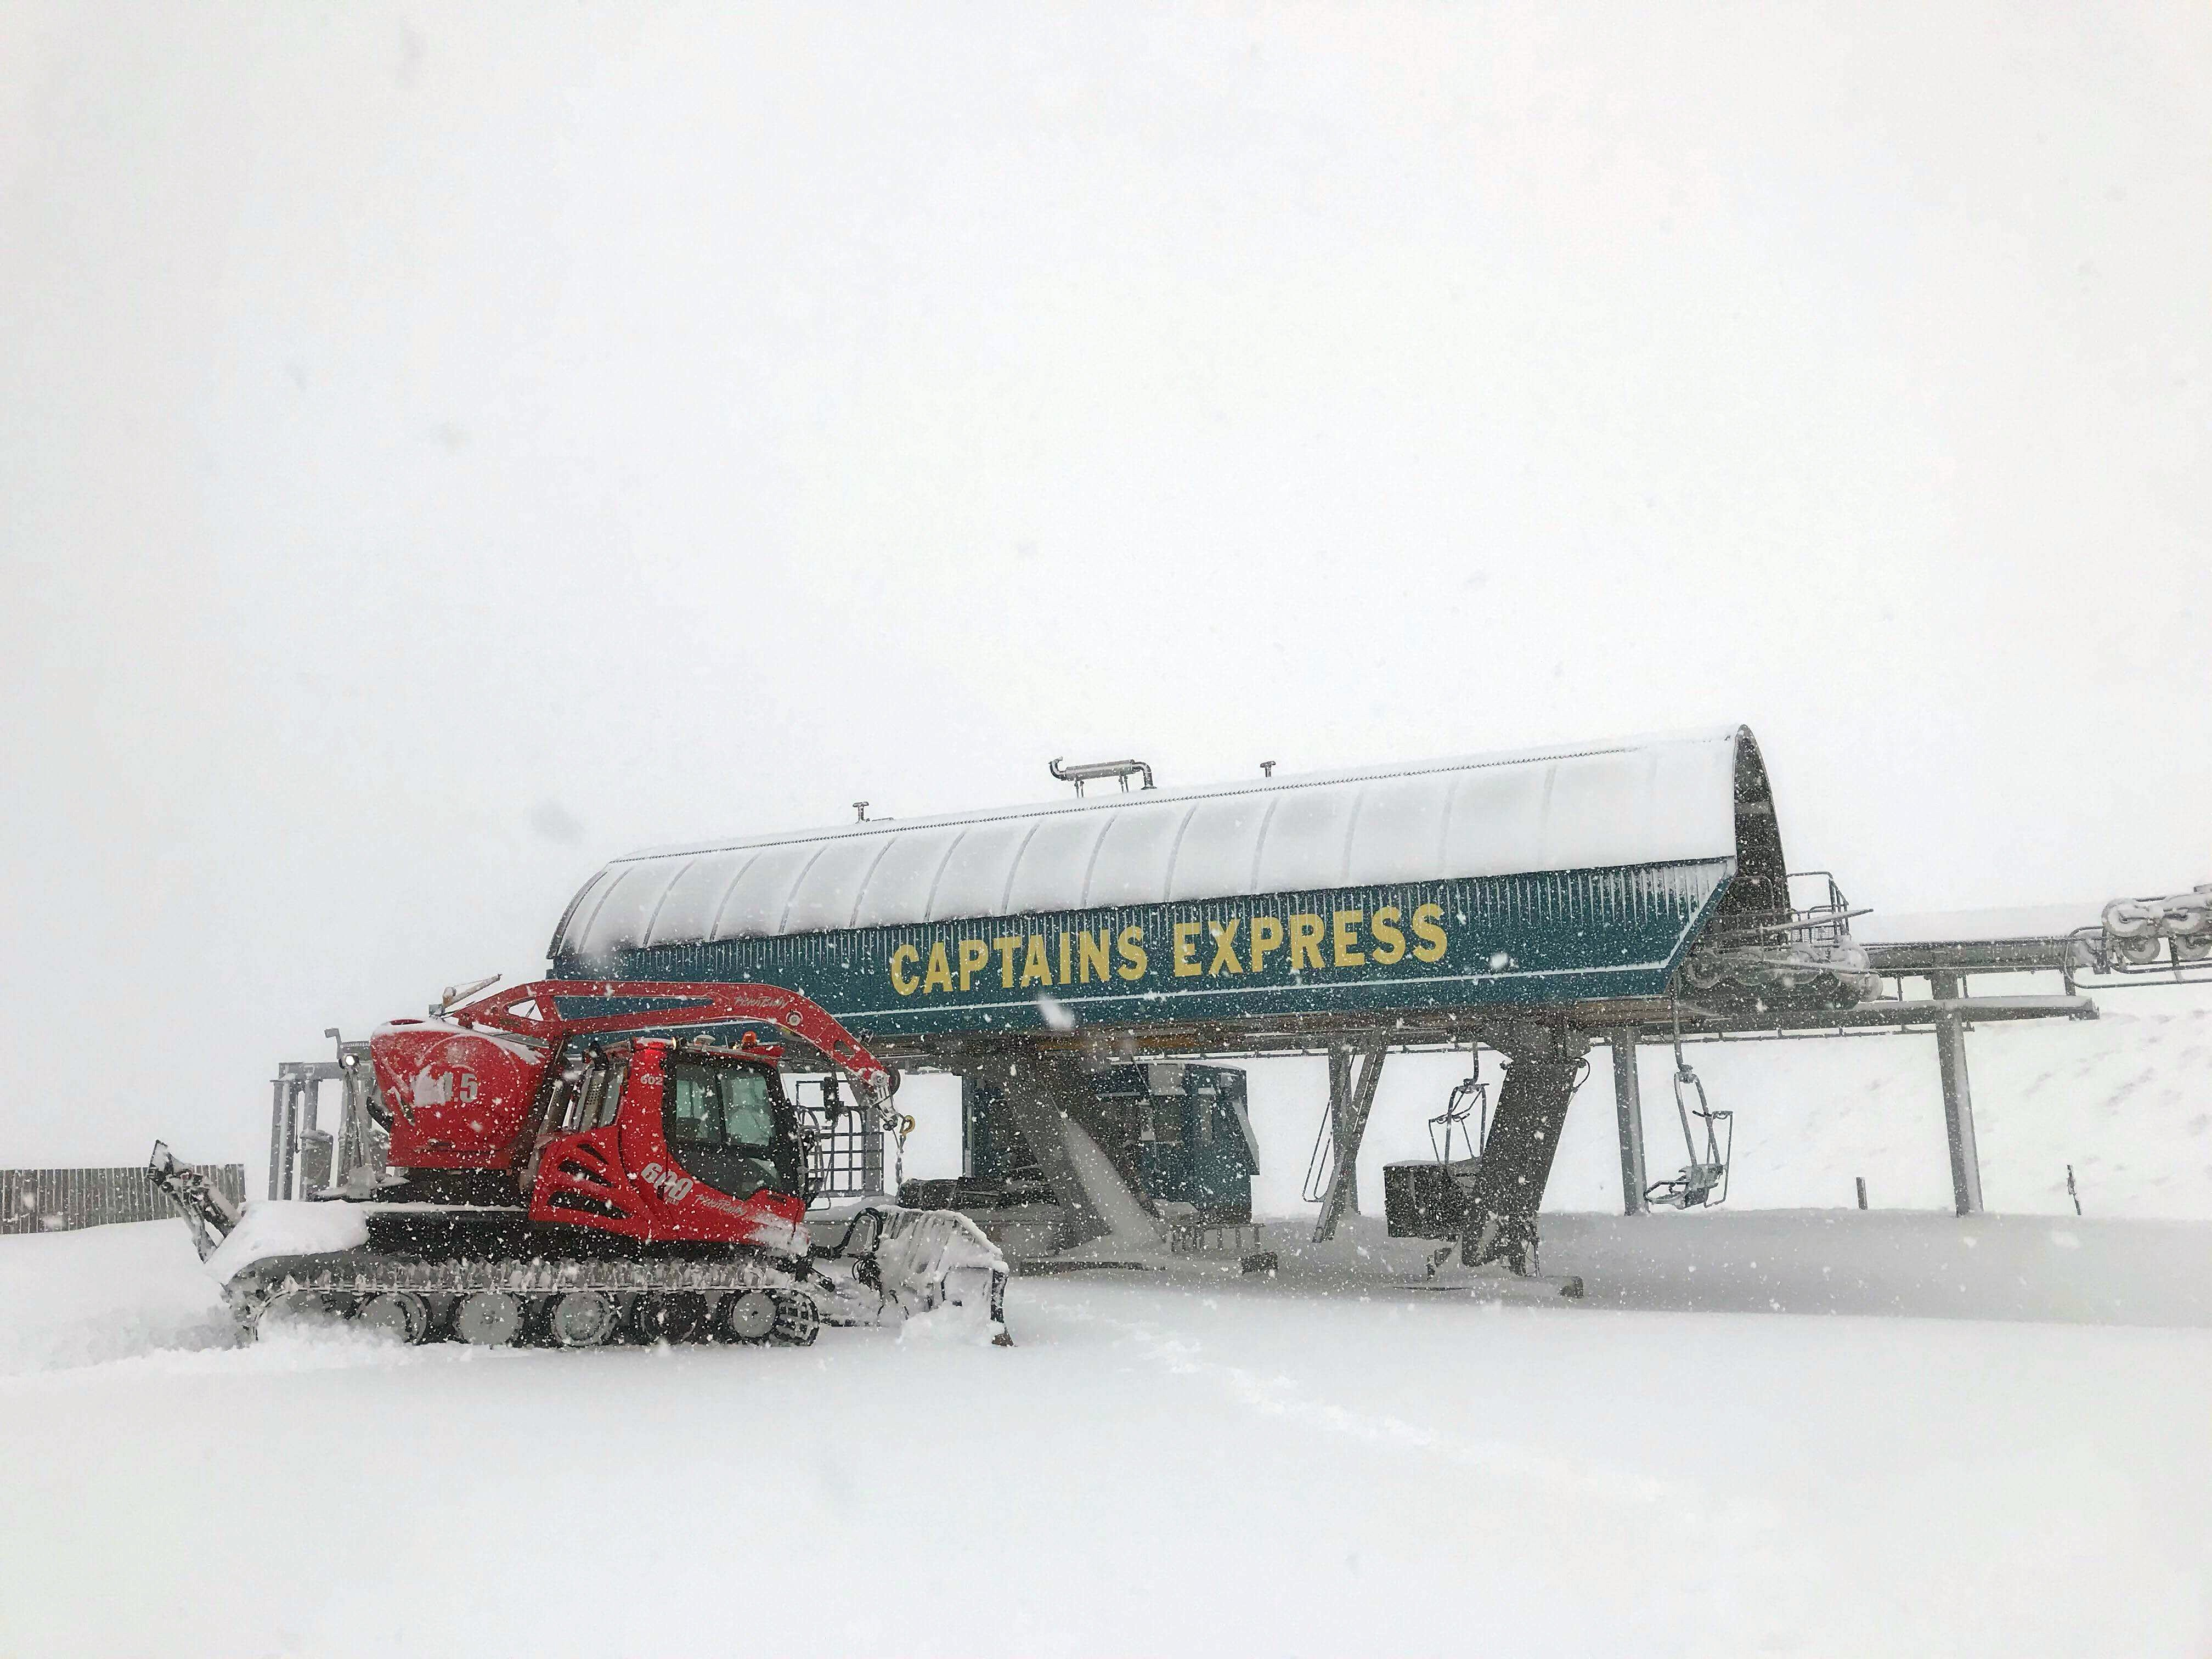 The Captains Express chairlift from which Auckland woman Janette Adams fell. PHOTO: ODT FILES